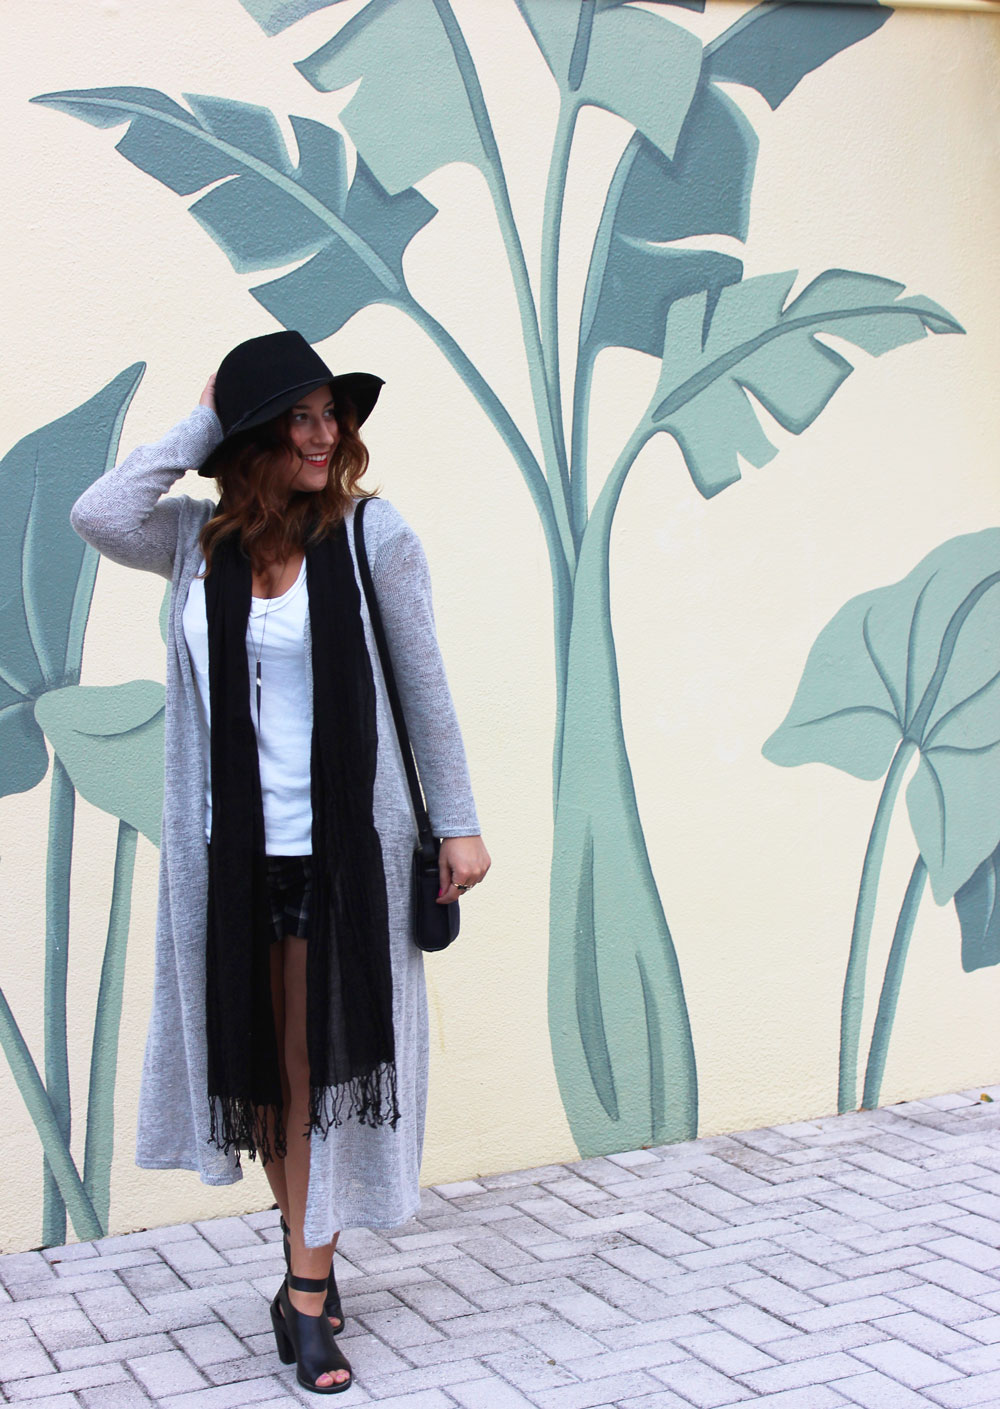 Cozy longline cardigan, perfect transition into fall or spring